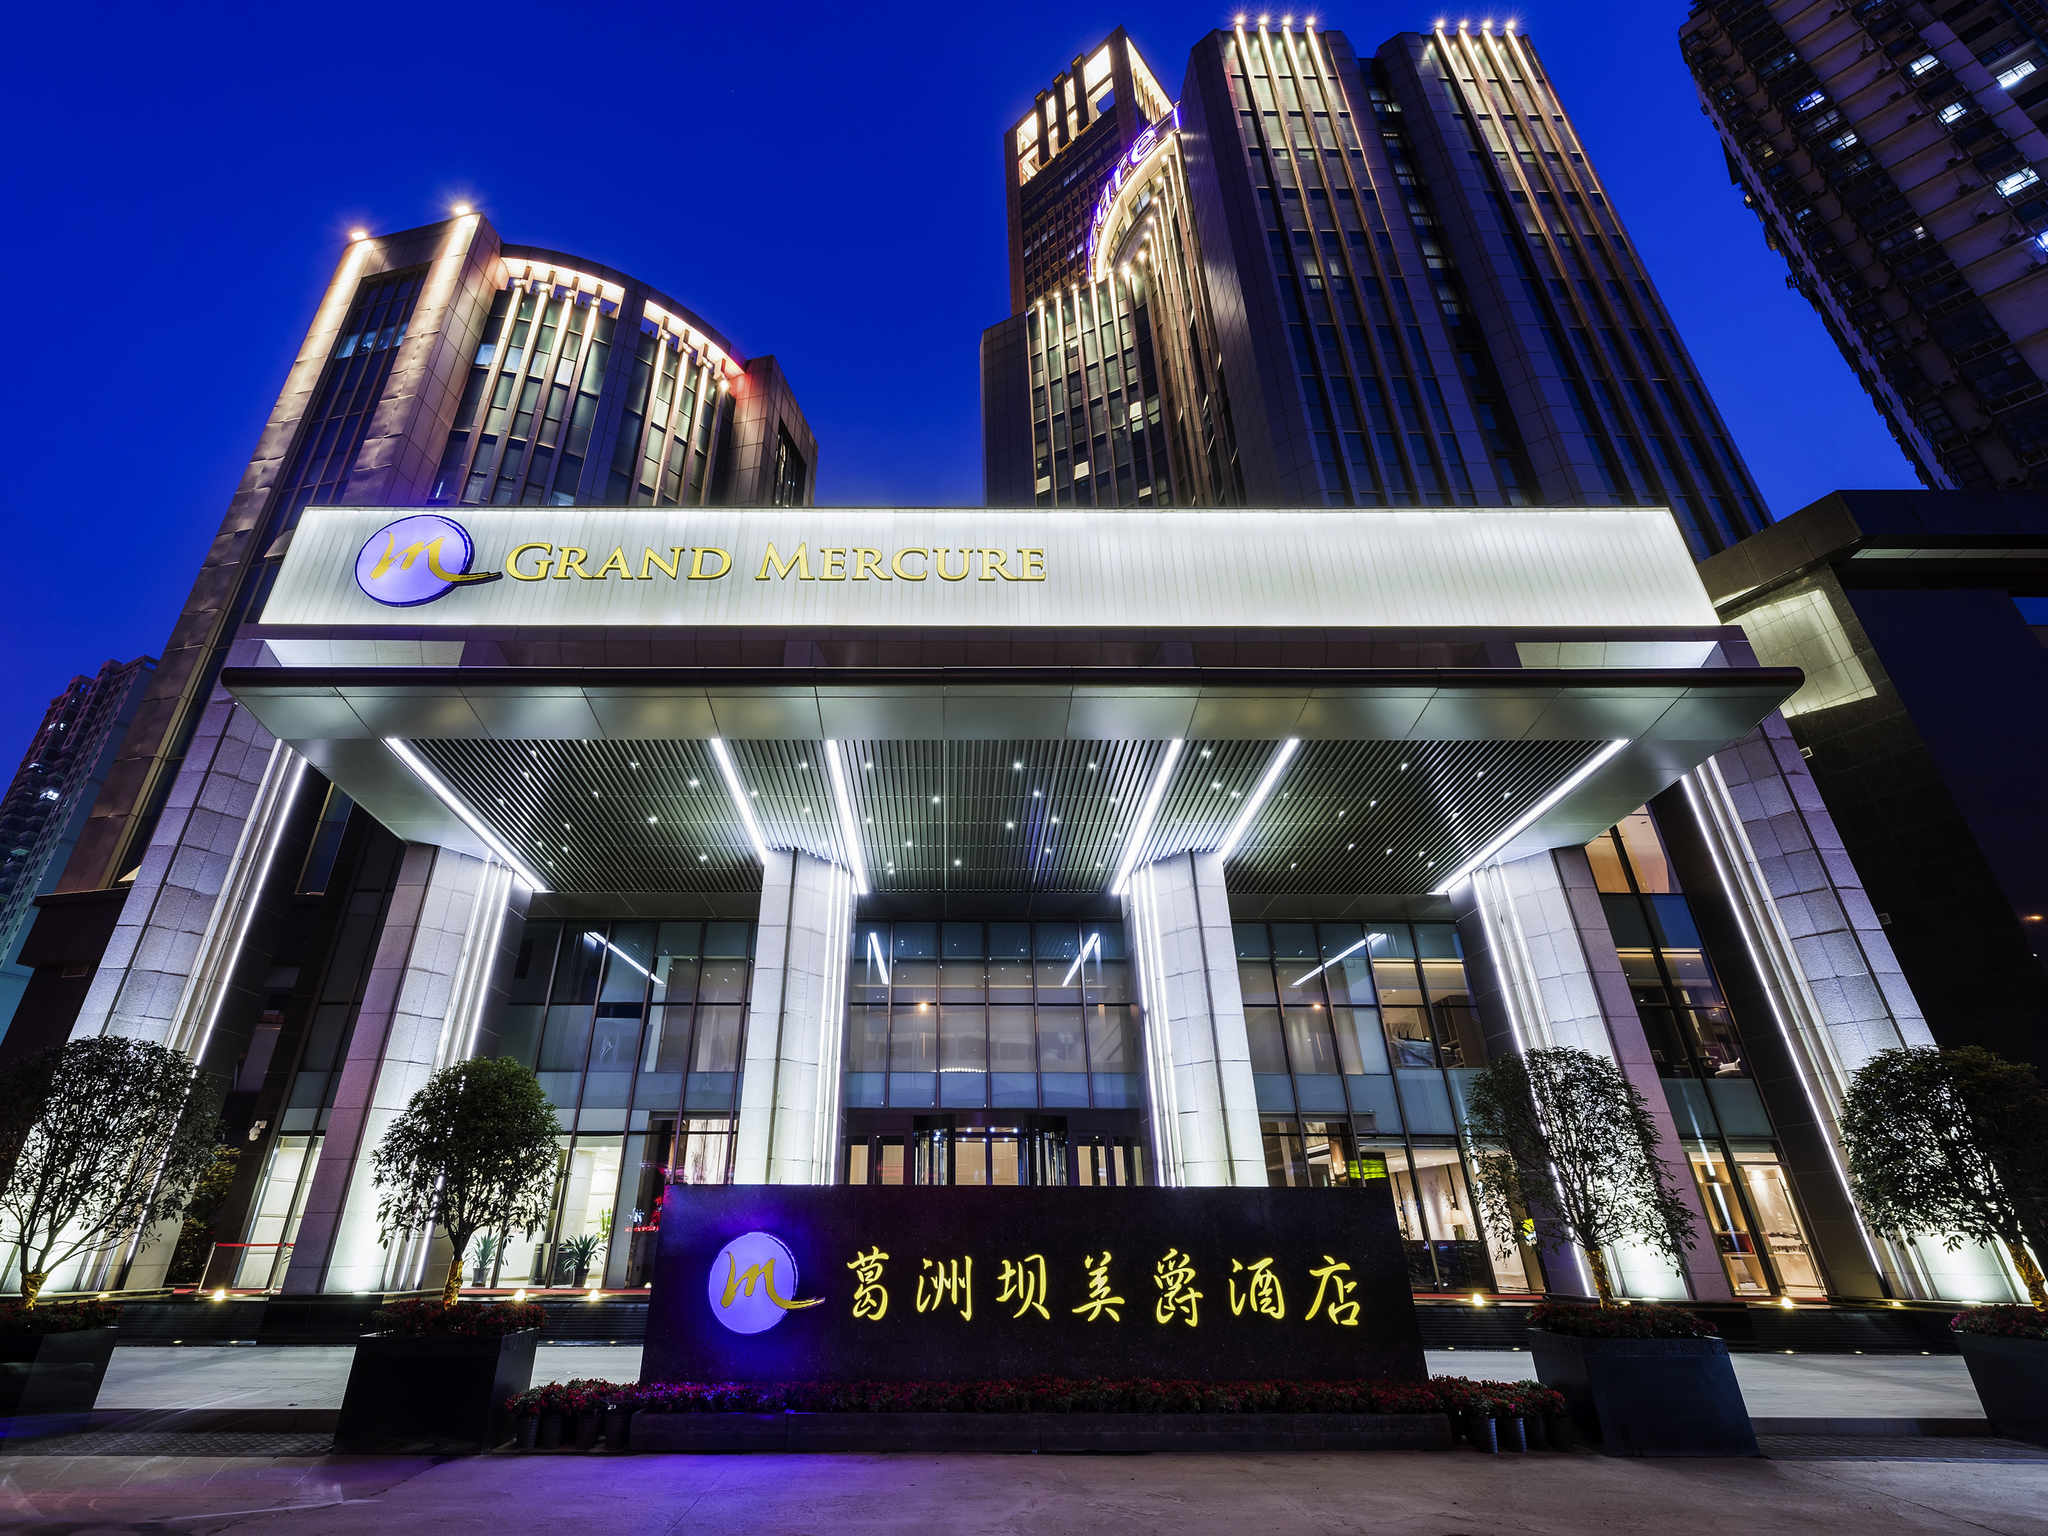 โรงแรม – Grand Mercure Wuhan Qiaokou